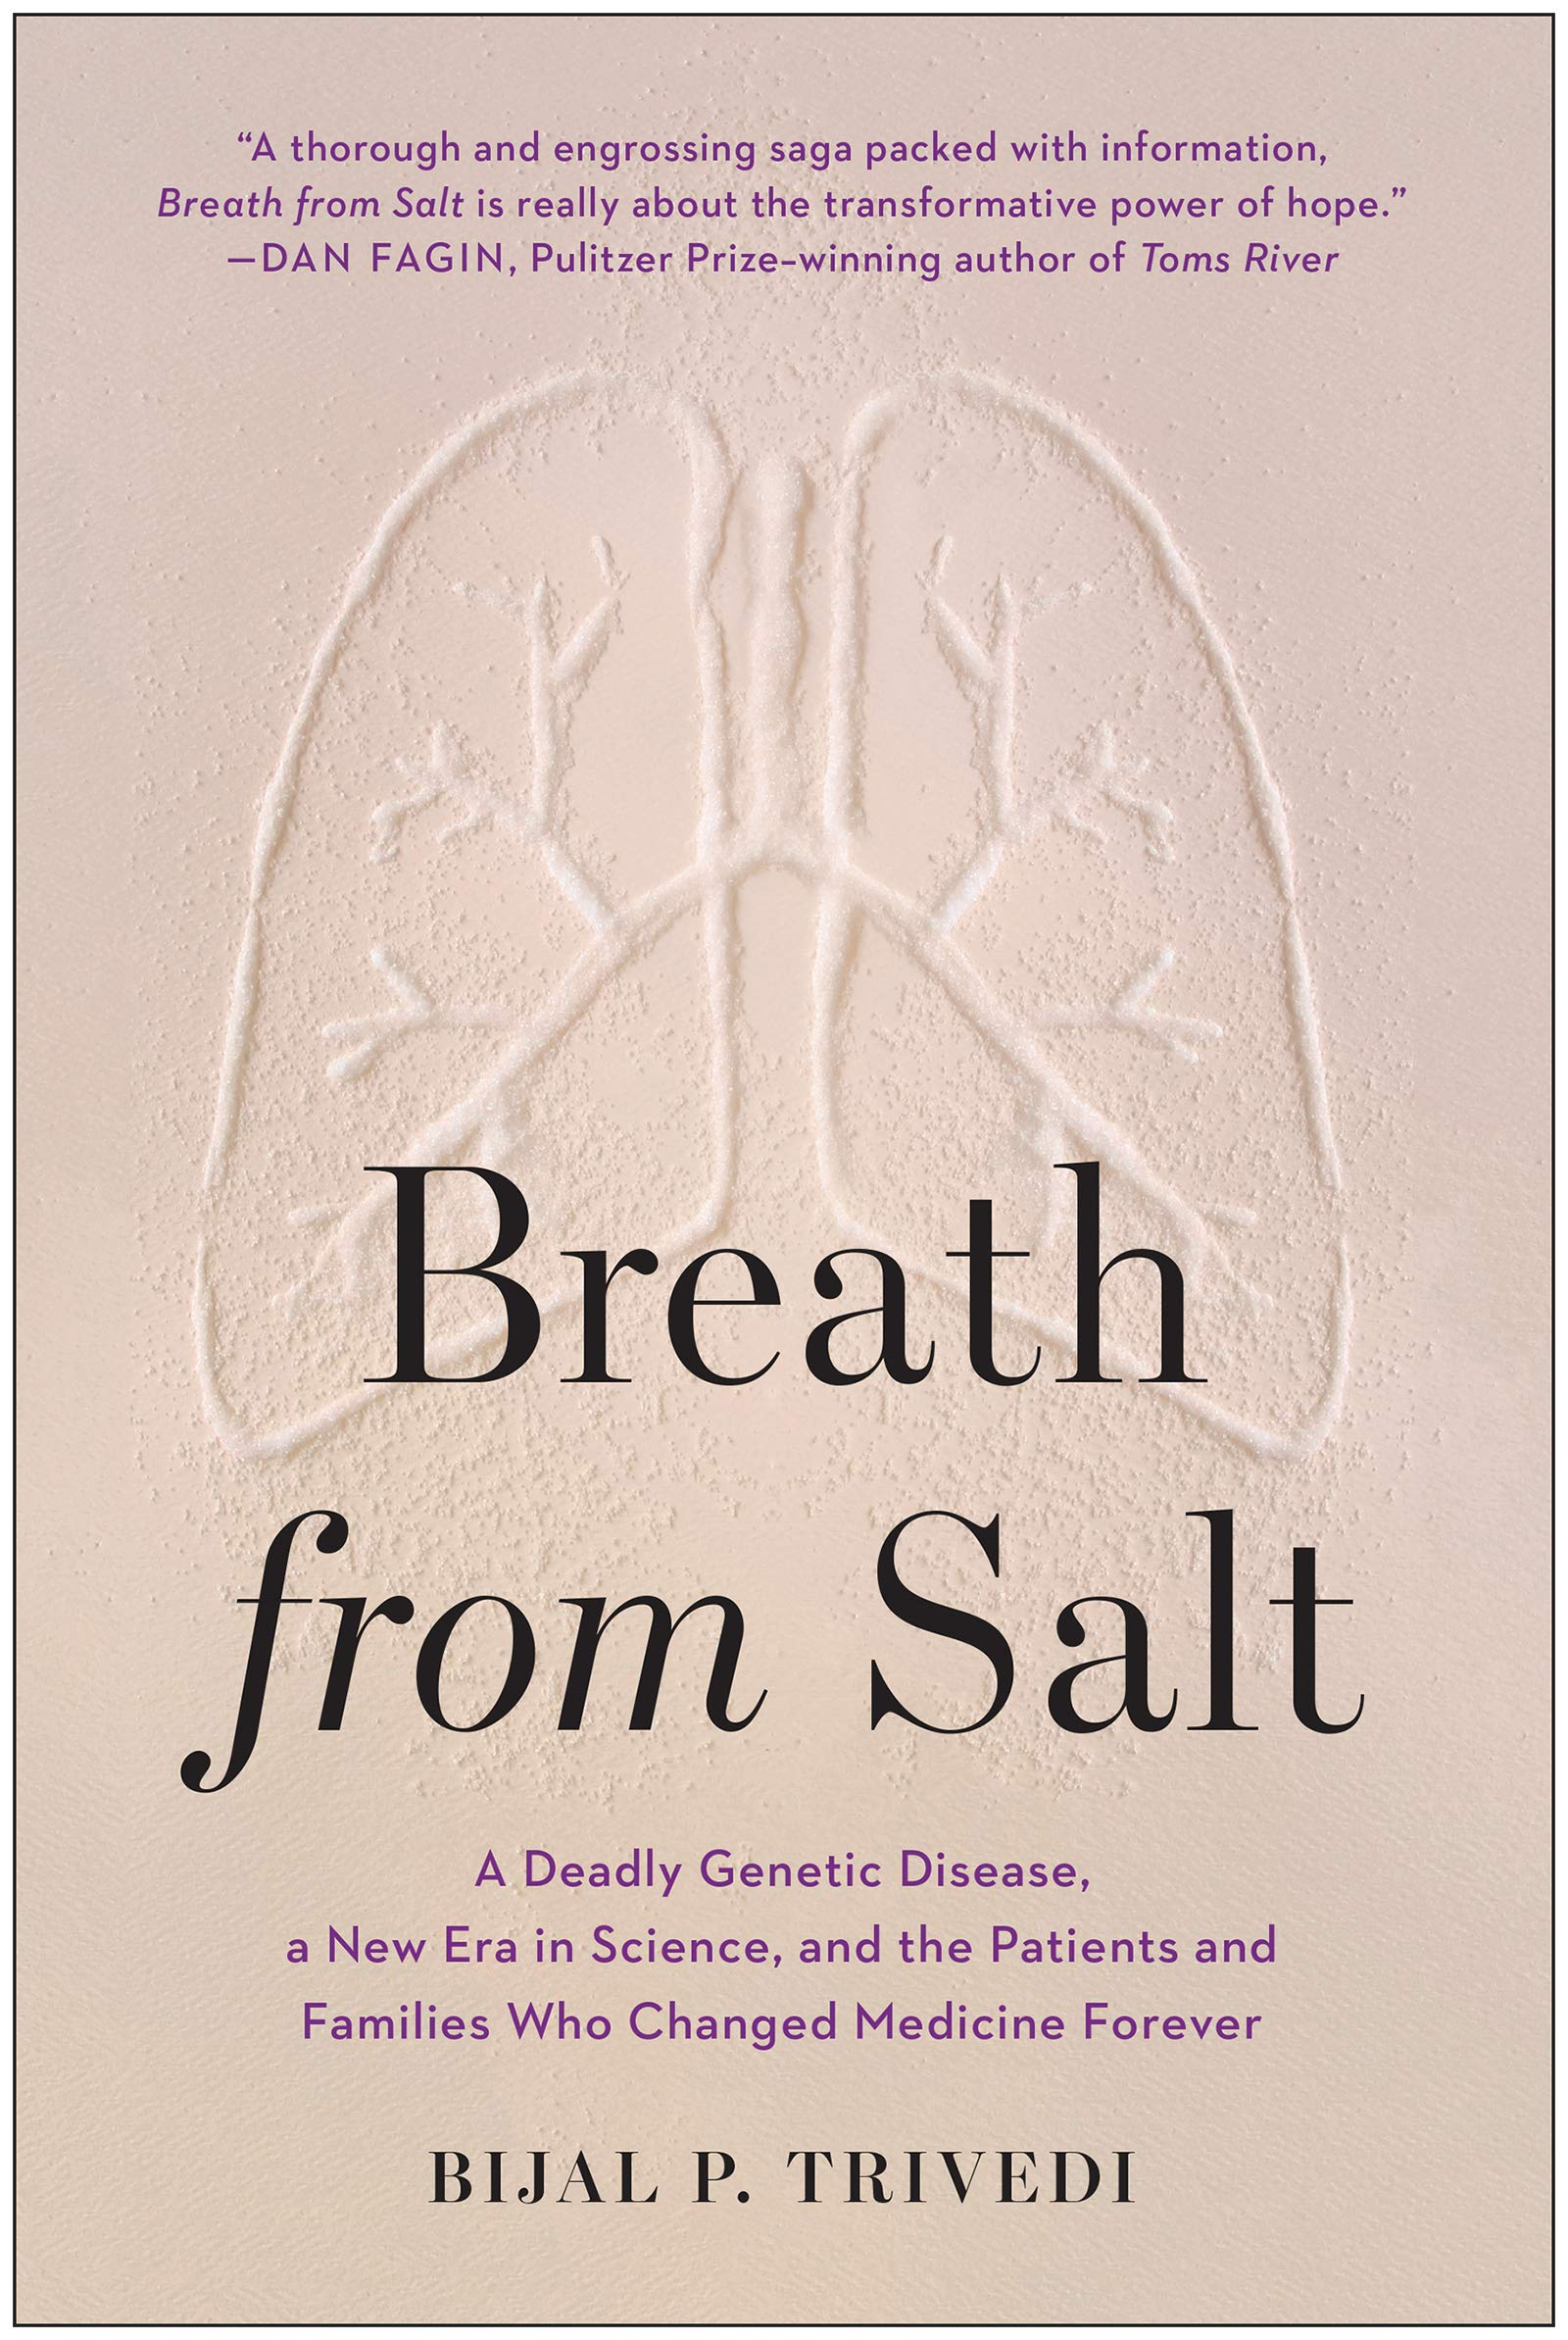 livro Breath from Salt: A Deadly Genetic Disease, a New Era in Science, and the Patients and Families Who Changed Medicine Forever